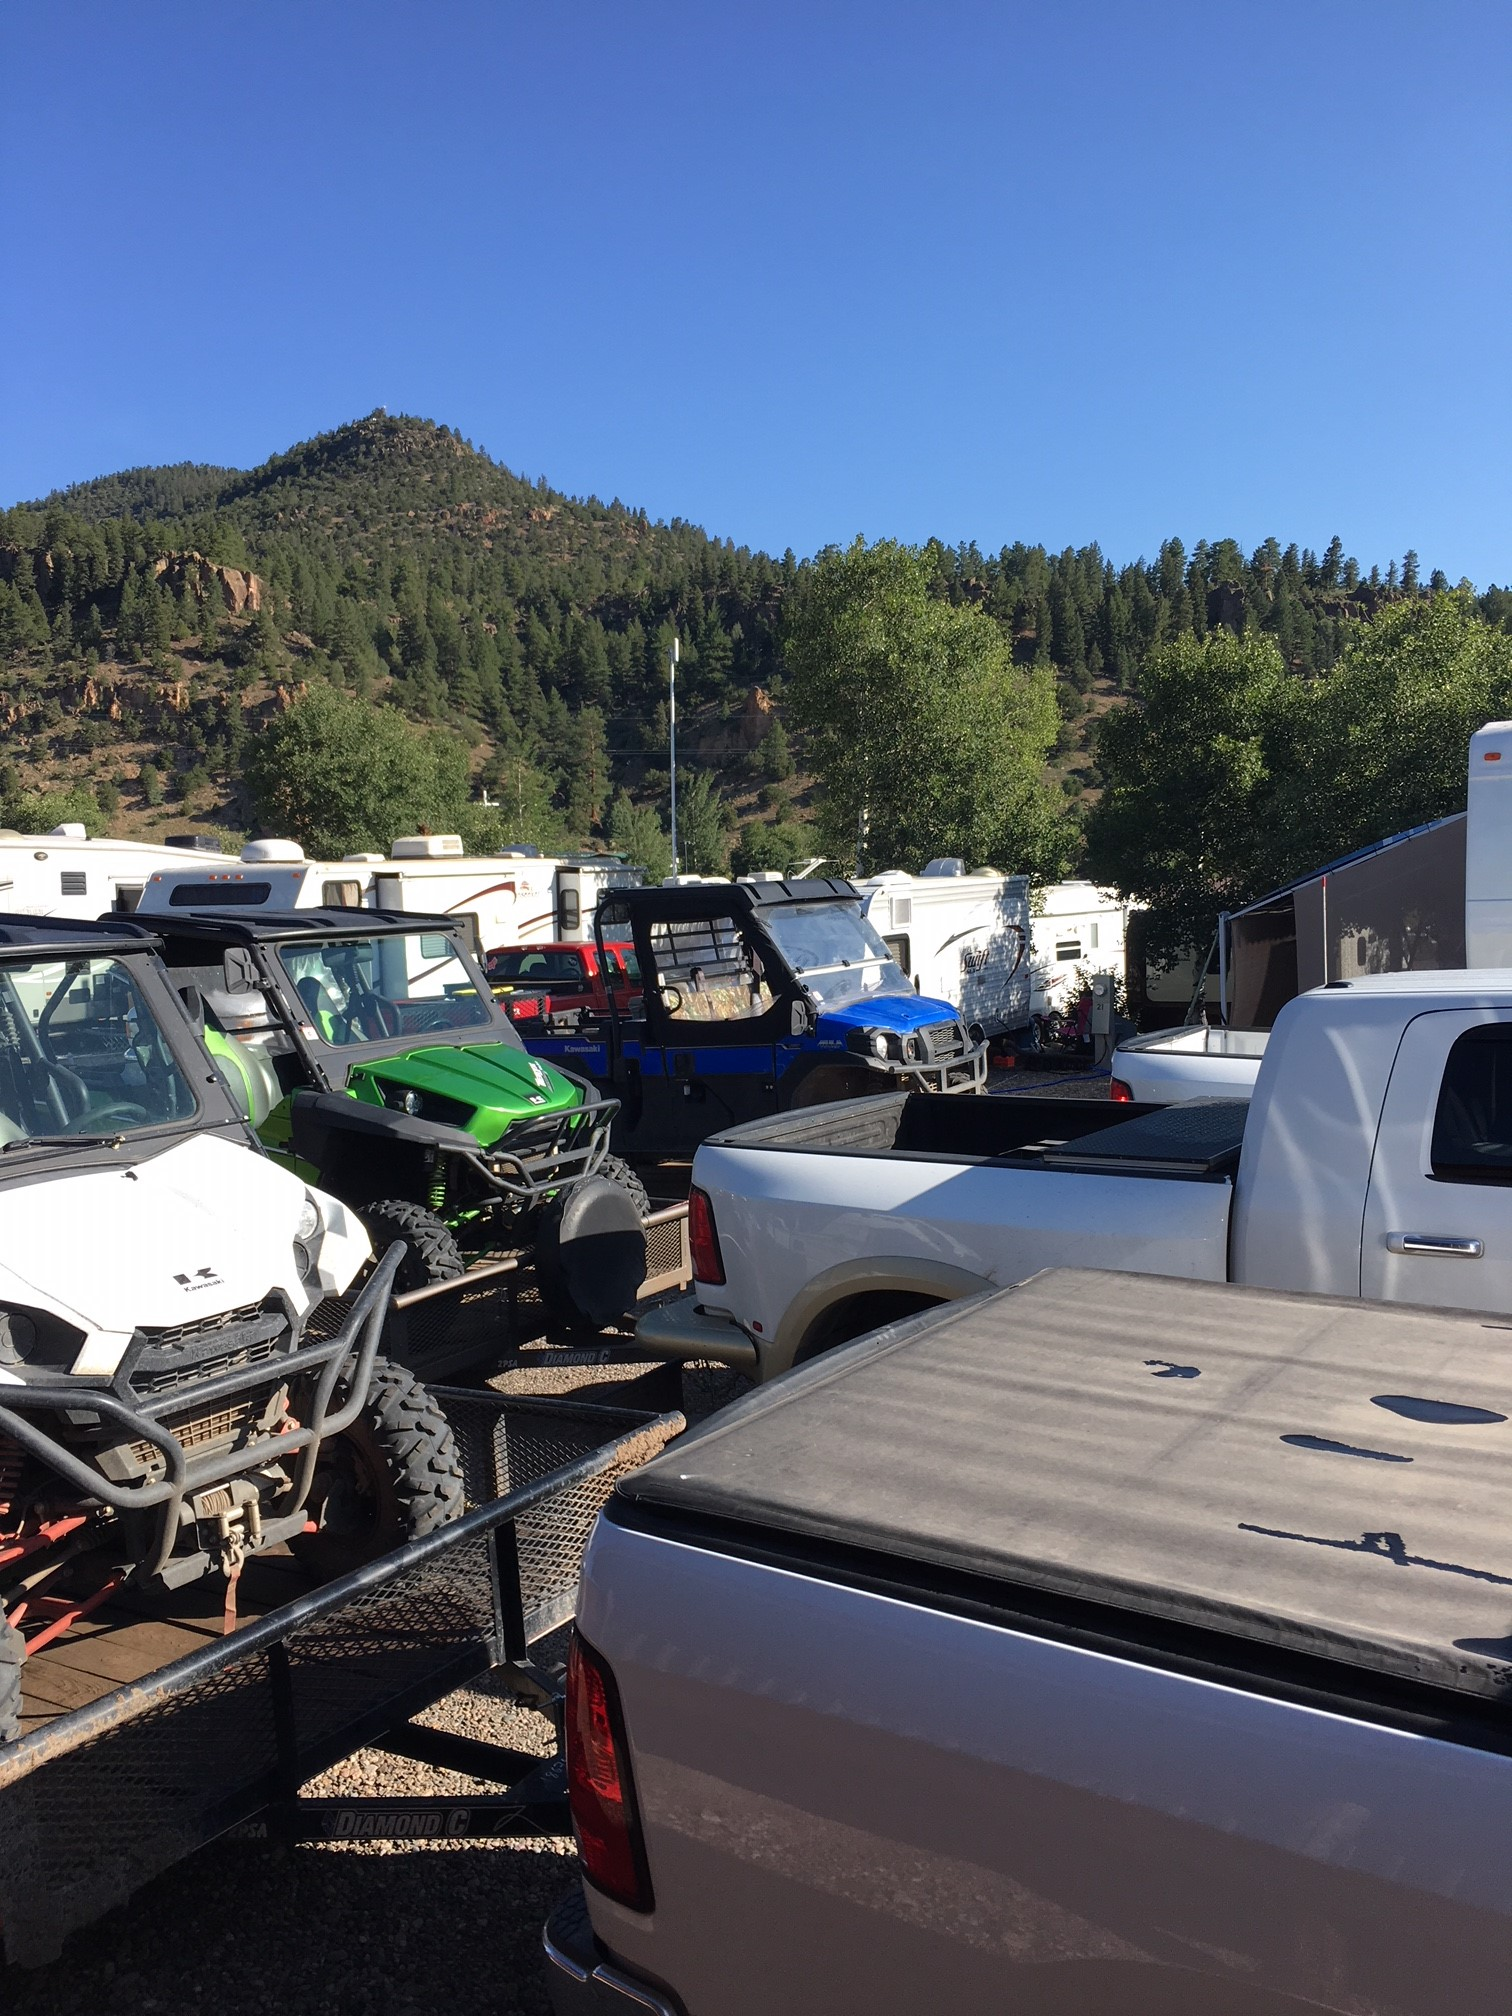 Trailer out to many other ATV trails in the area!